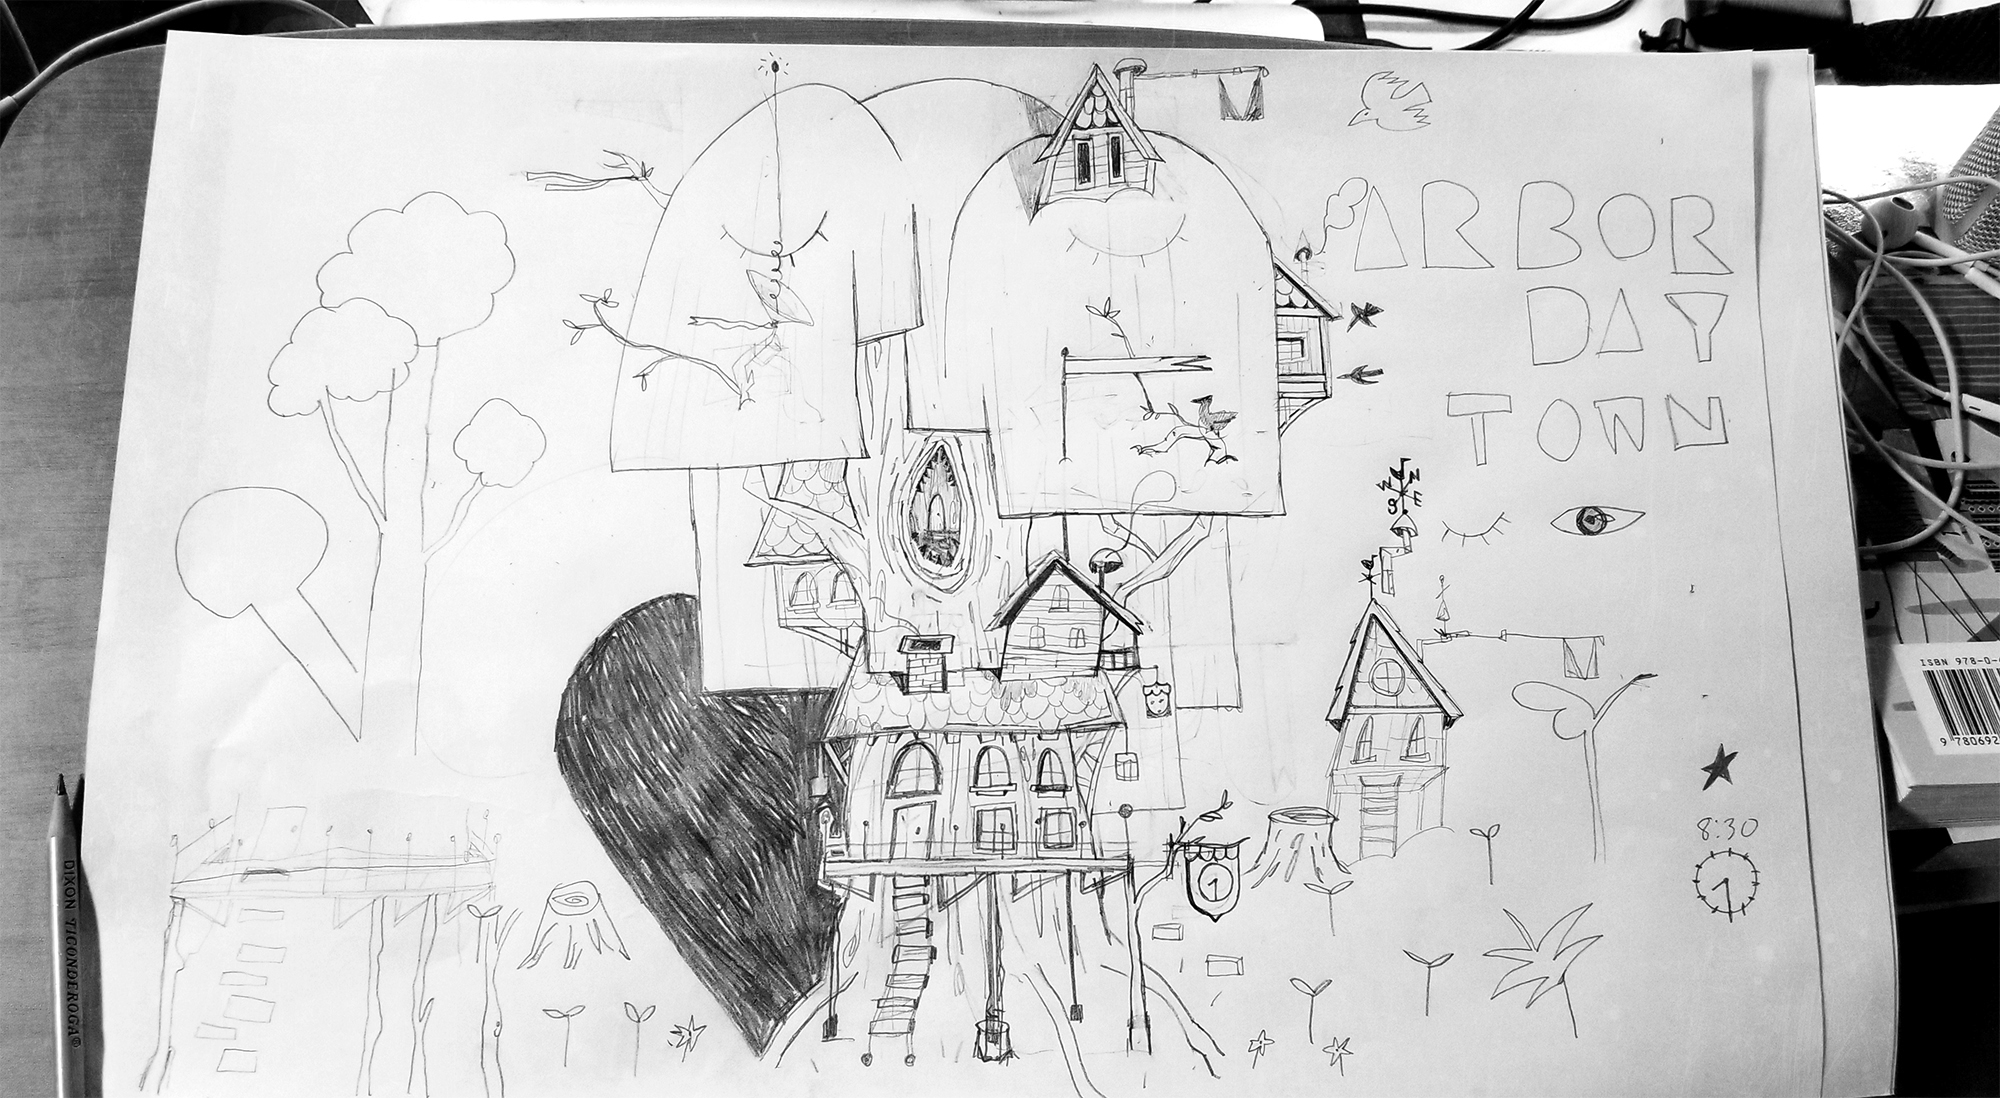 Treehouse_Sketch_Web_DomCiviello.jpg